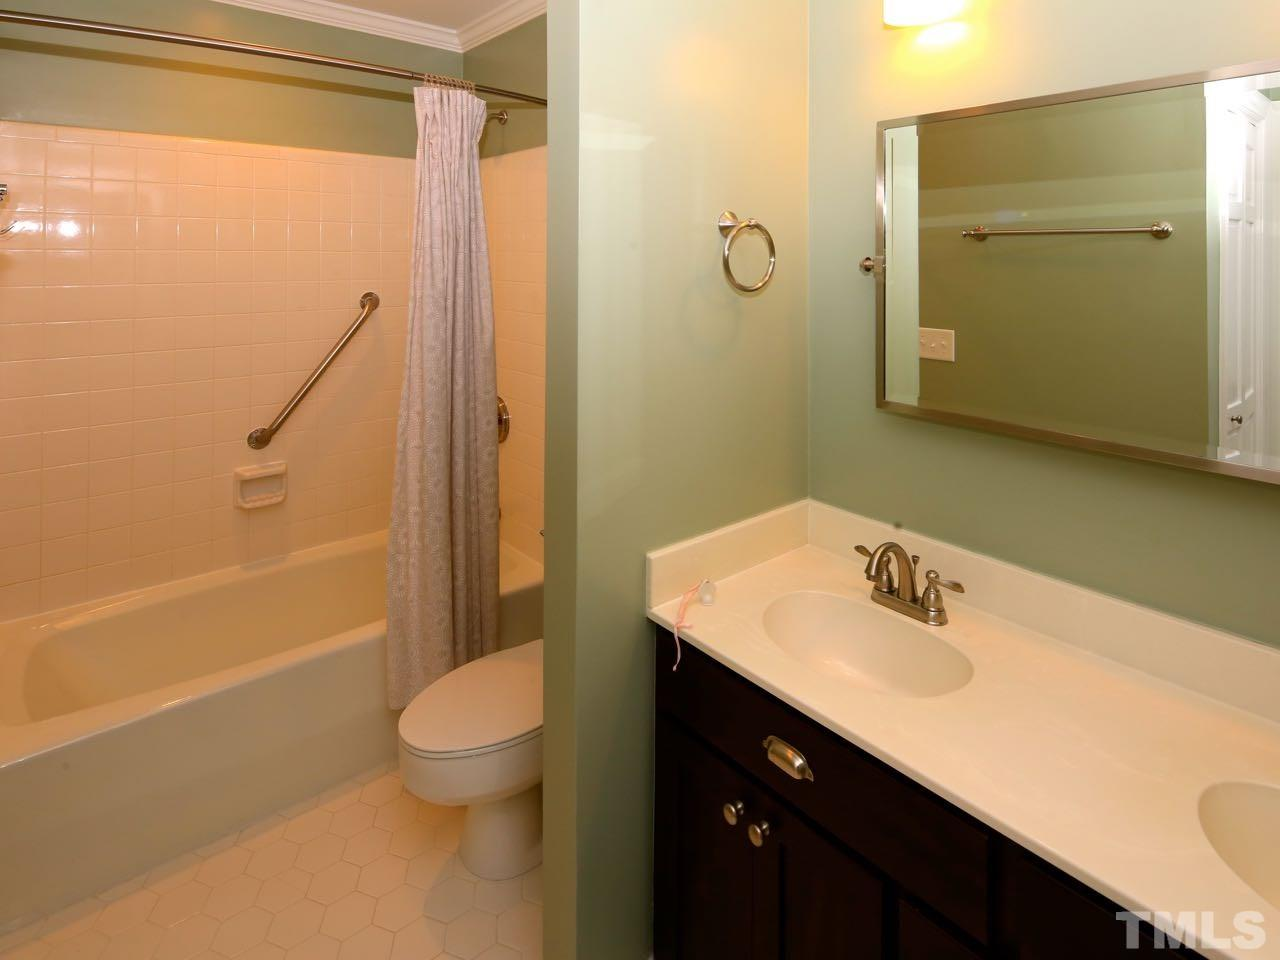 The second full bathroom also has a tile floor and a relatively-new vanity.